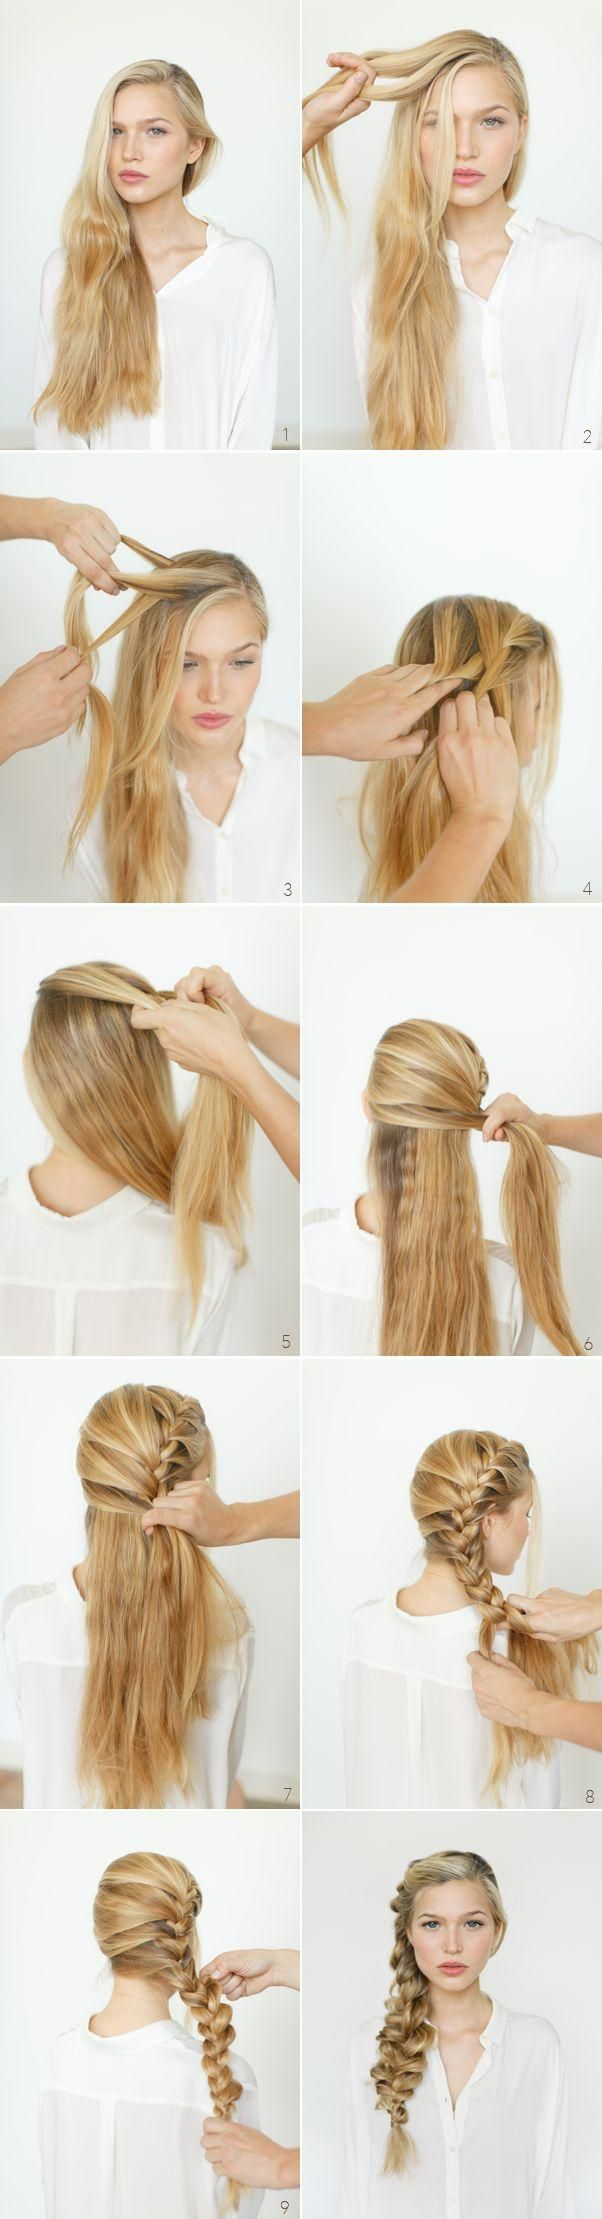 Casual And Fuss-Free DIY Side Braid Casual And Fuss-Free DIY Side Braid new images